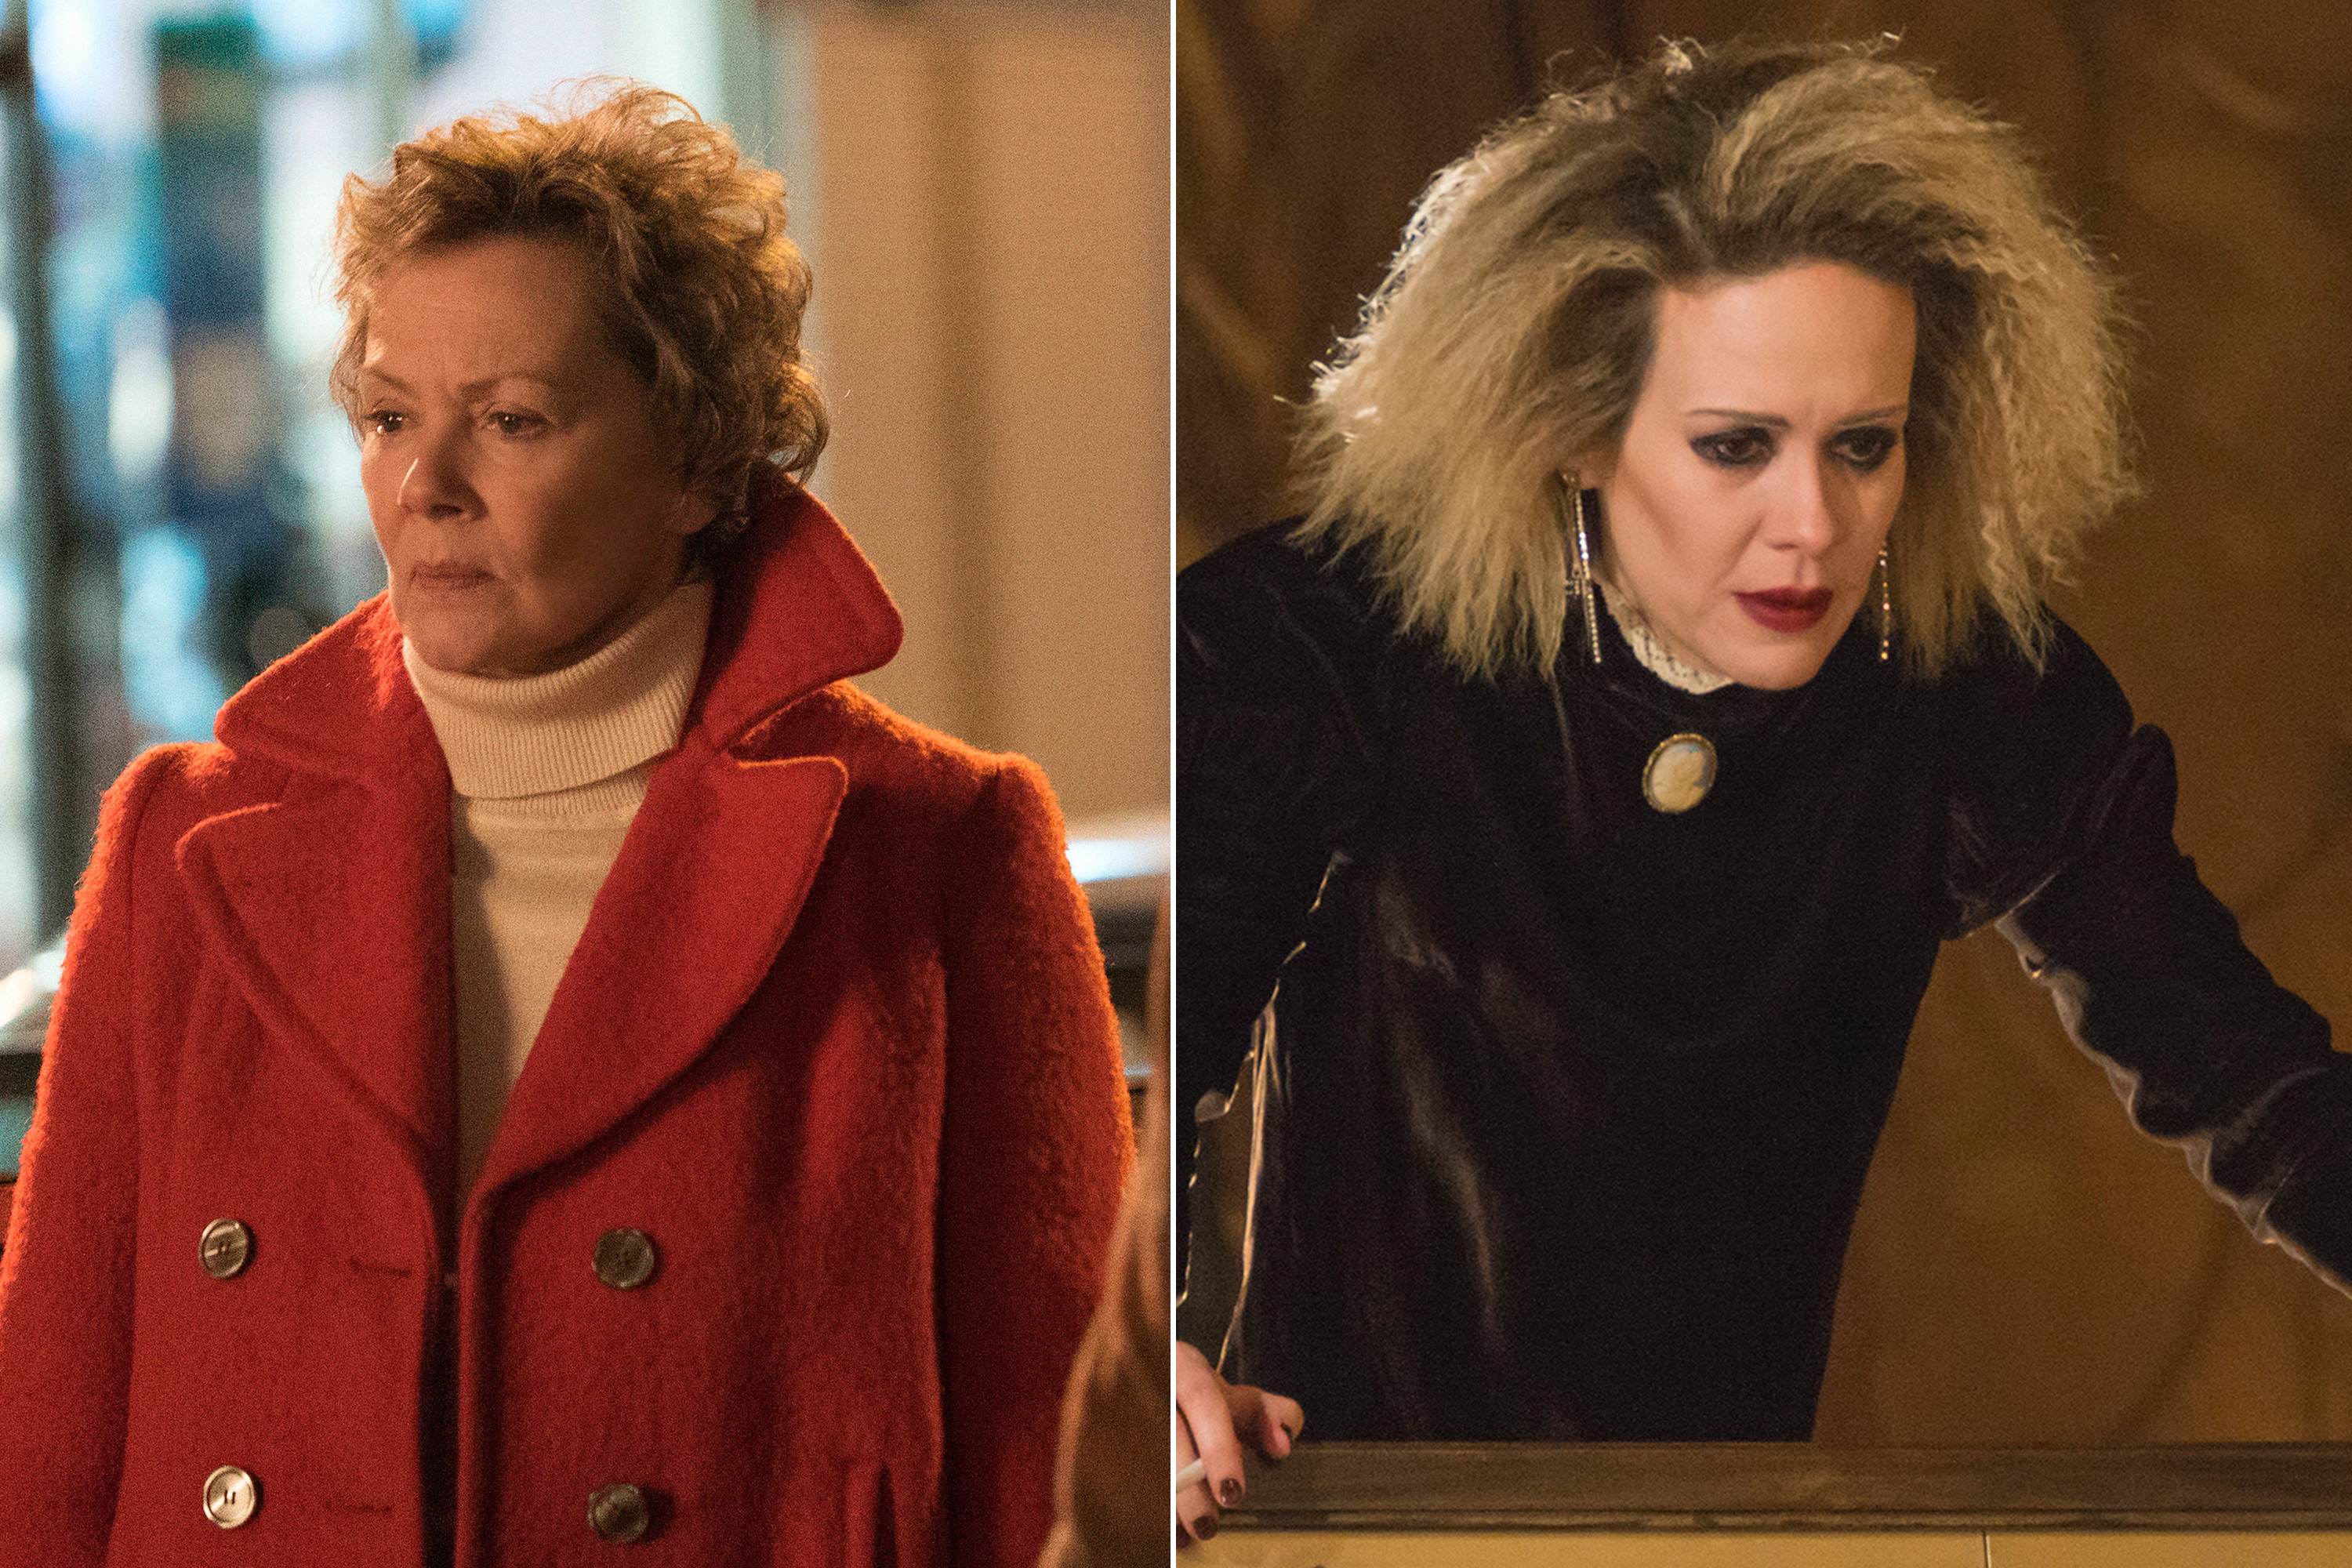 Best Supporting Actress, Miniseries